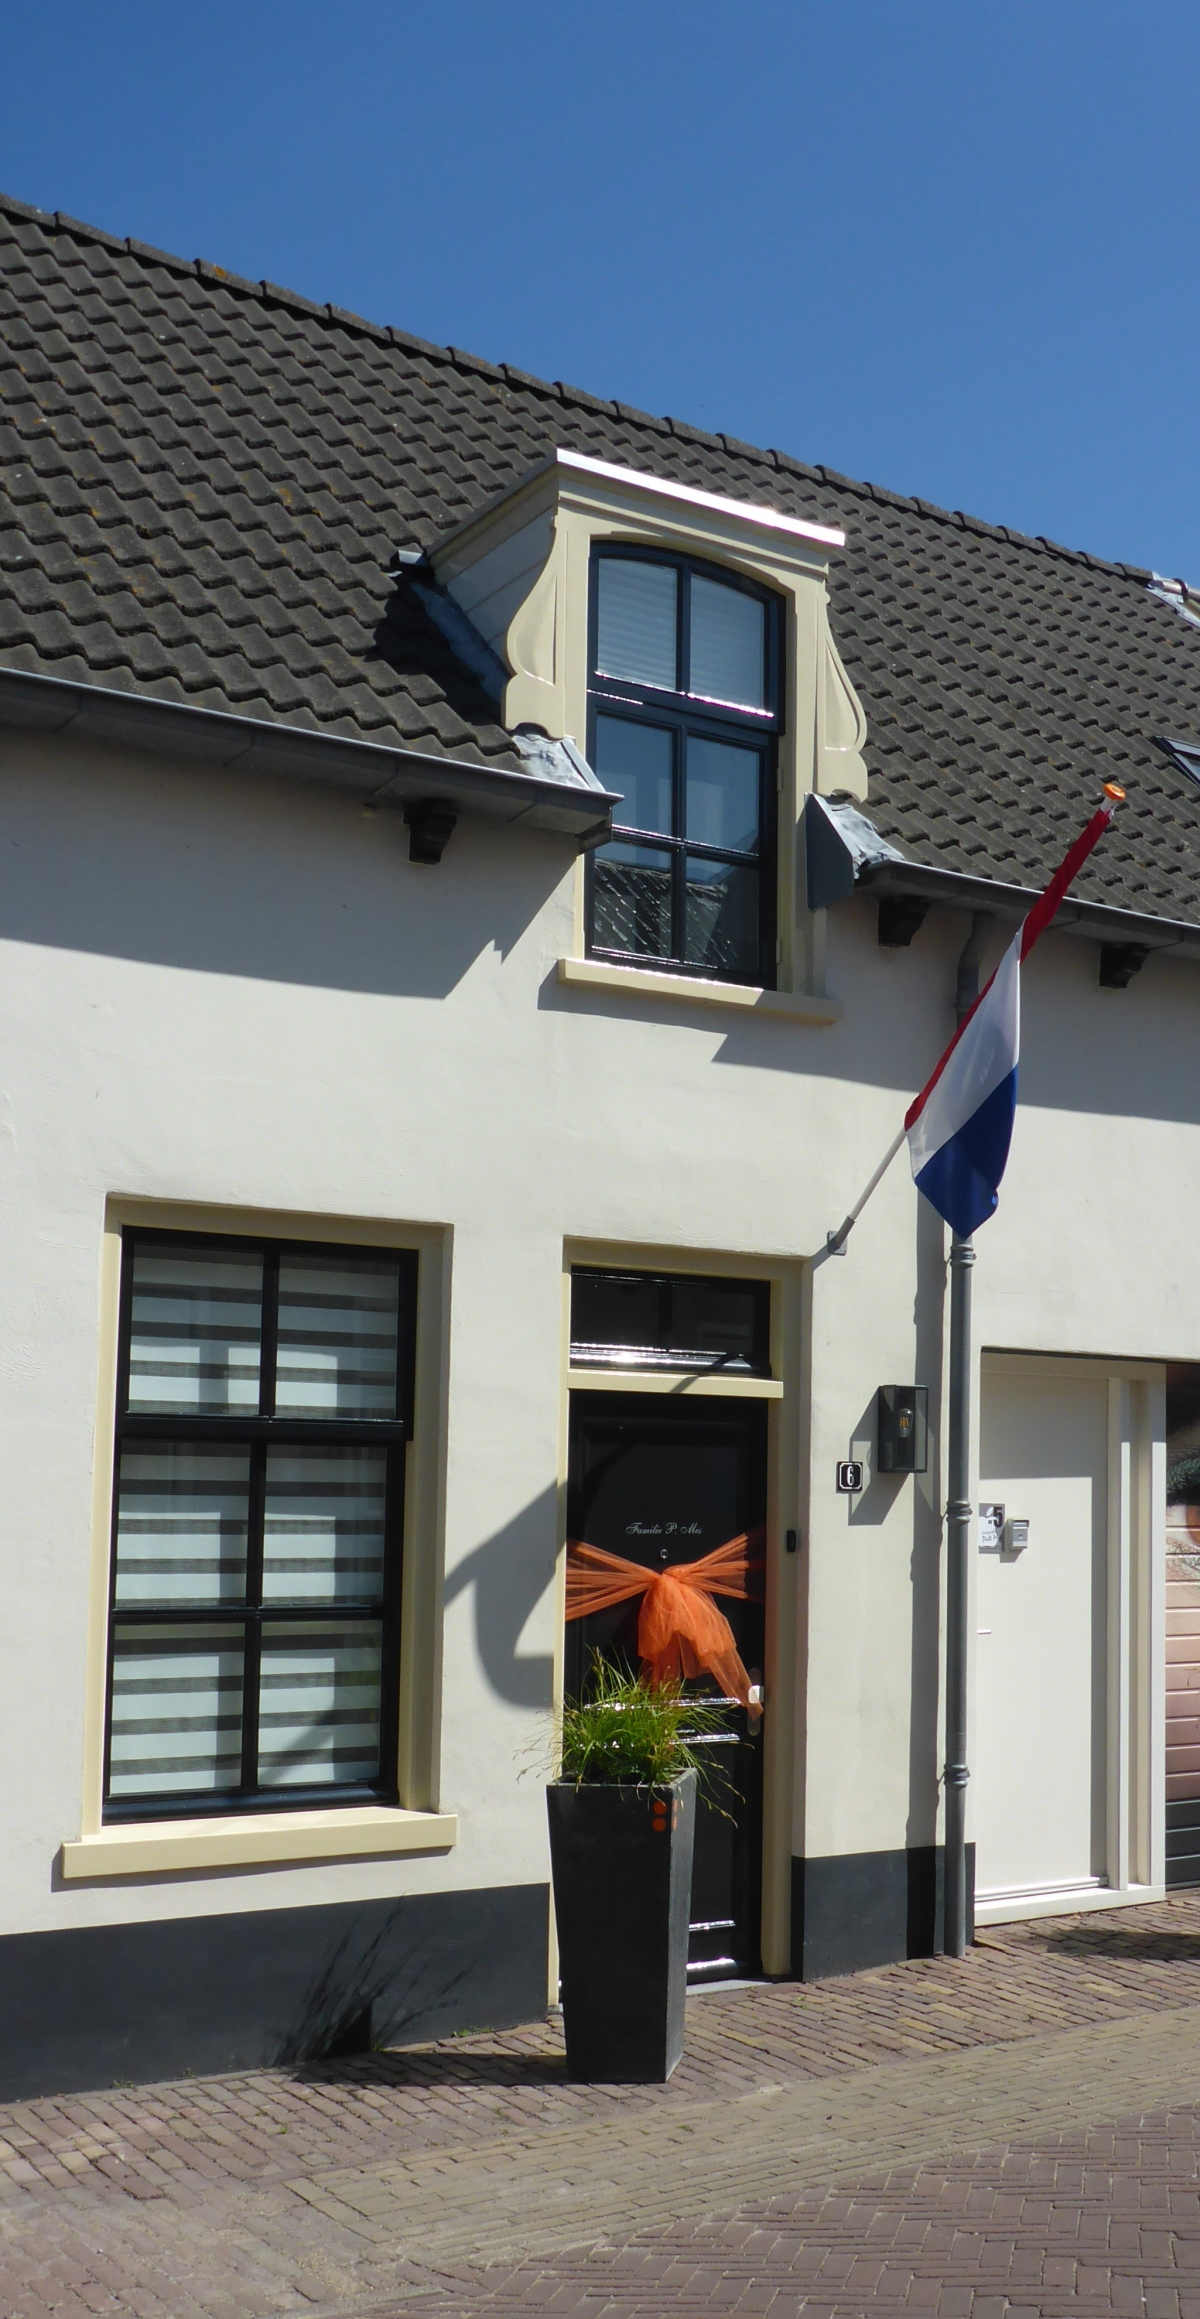 Oud-Alblas house decorated for Liberation Day